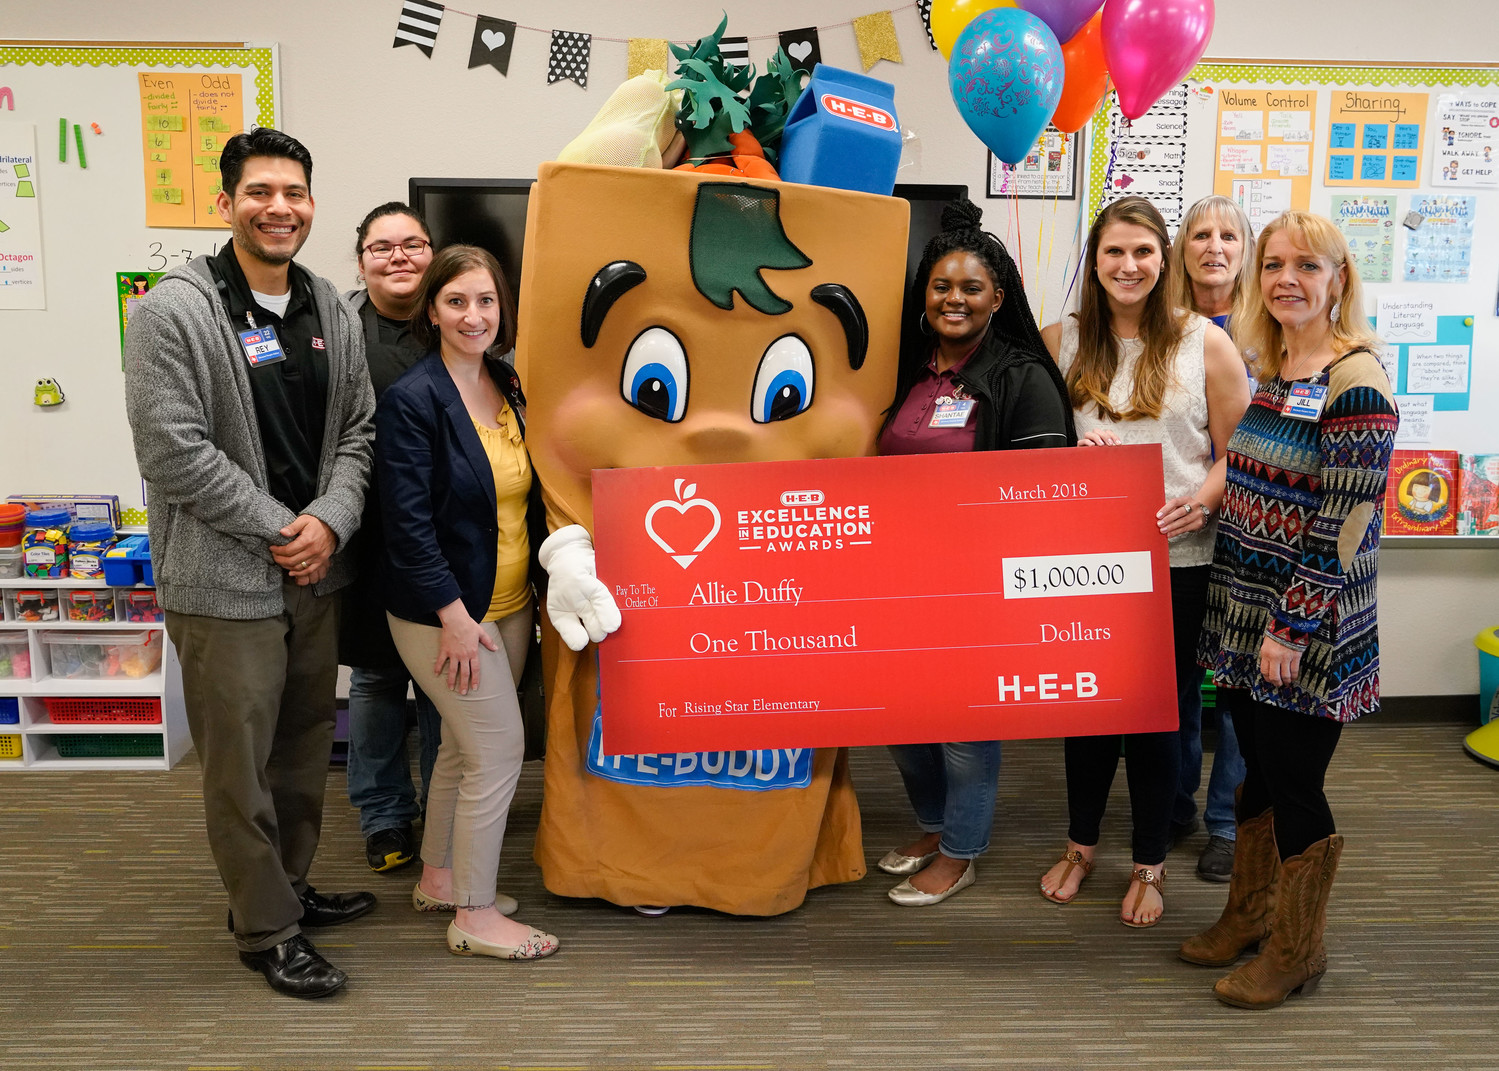 Allie Duffy poses with a group of H-E-B employees with a check for $1,000 during a visit to her classroom prior to the final selection of winners in the H-E-B Excellence in Education Awards.